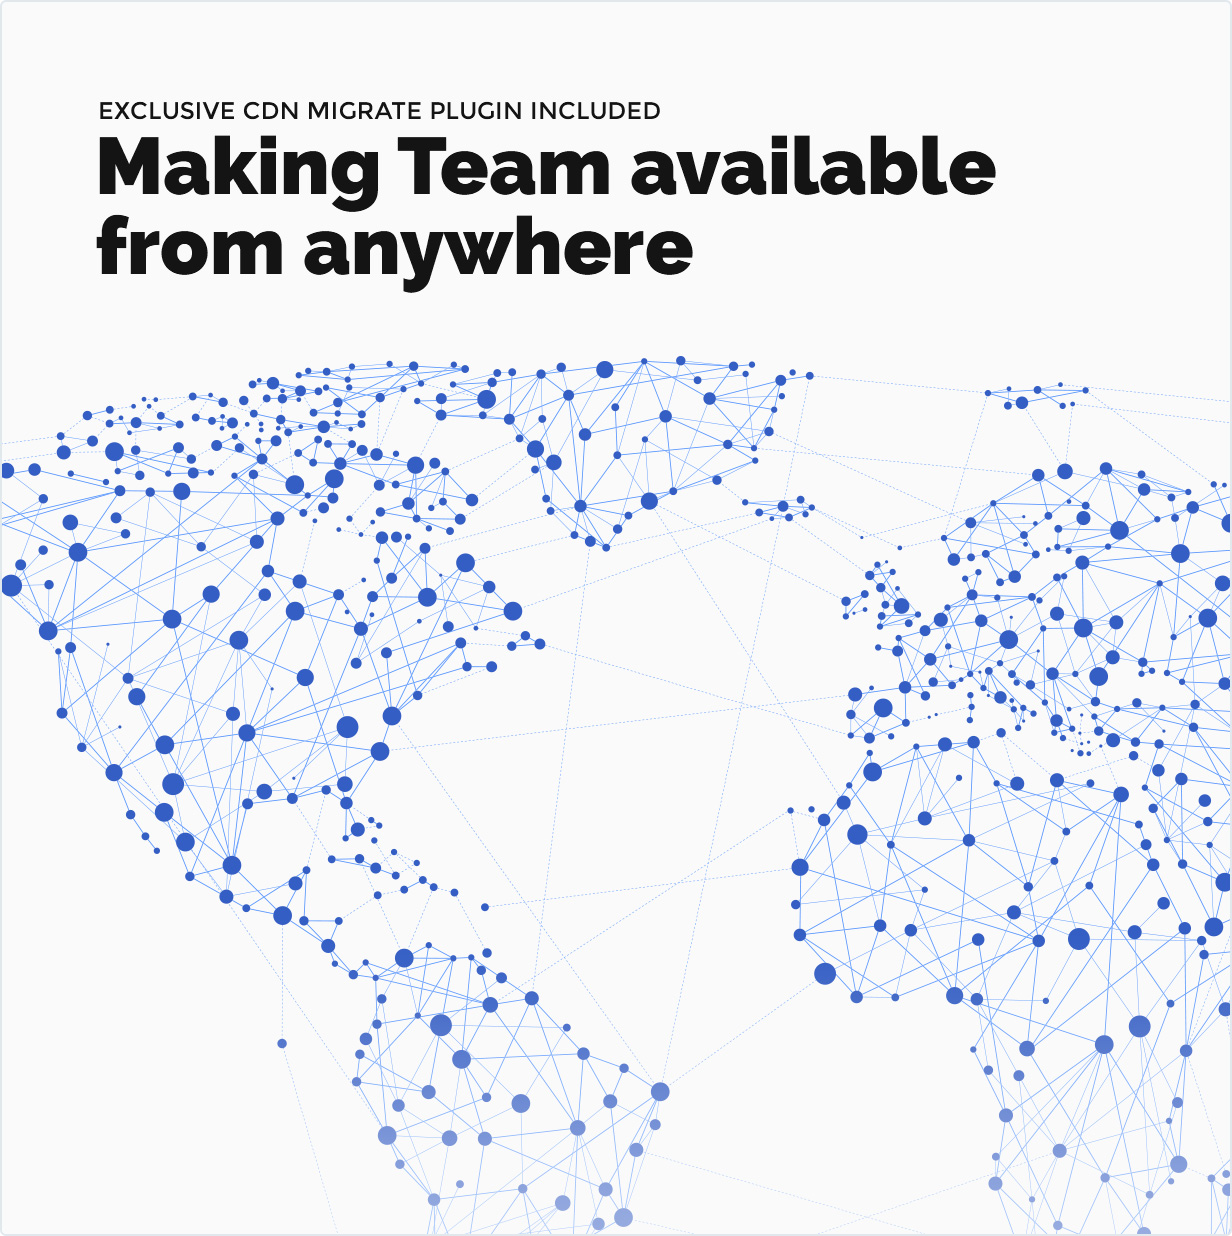 Exclusive CDN Migrate plugin included. Making Team available from everywhere in the world!